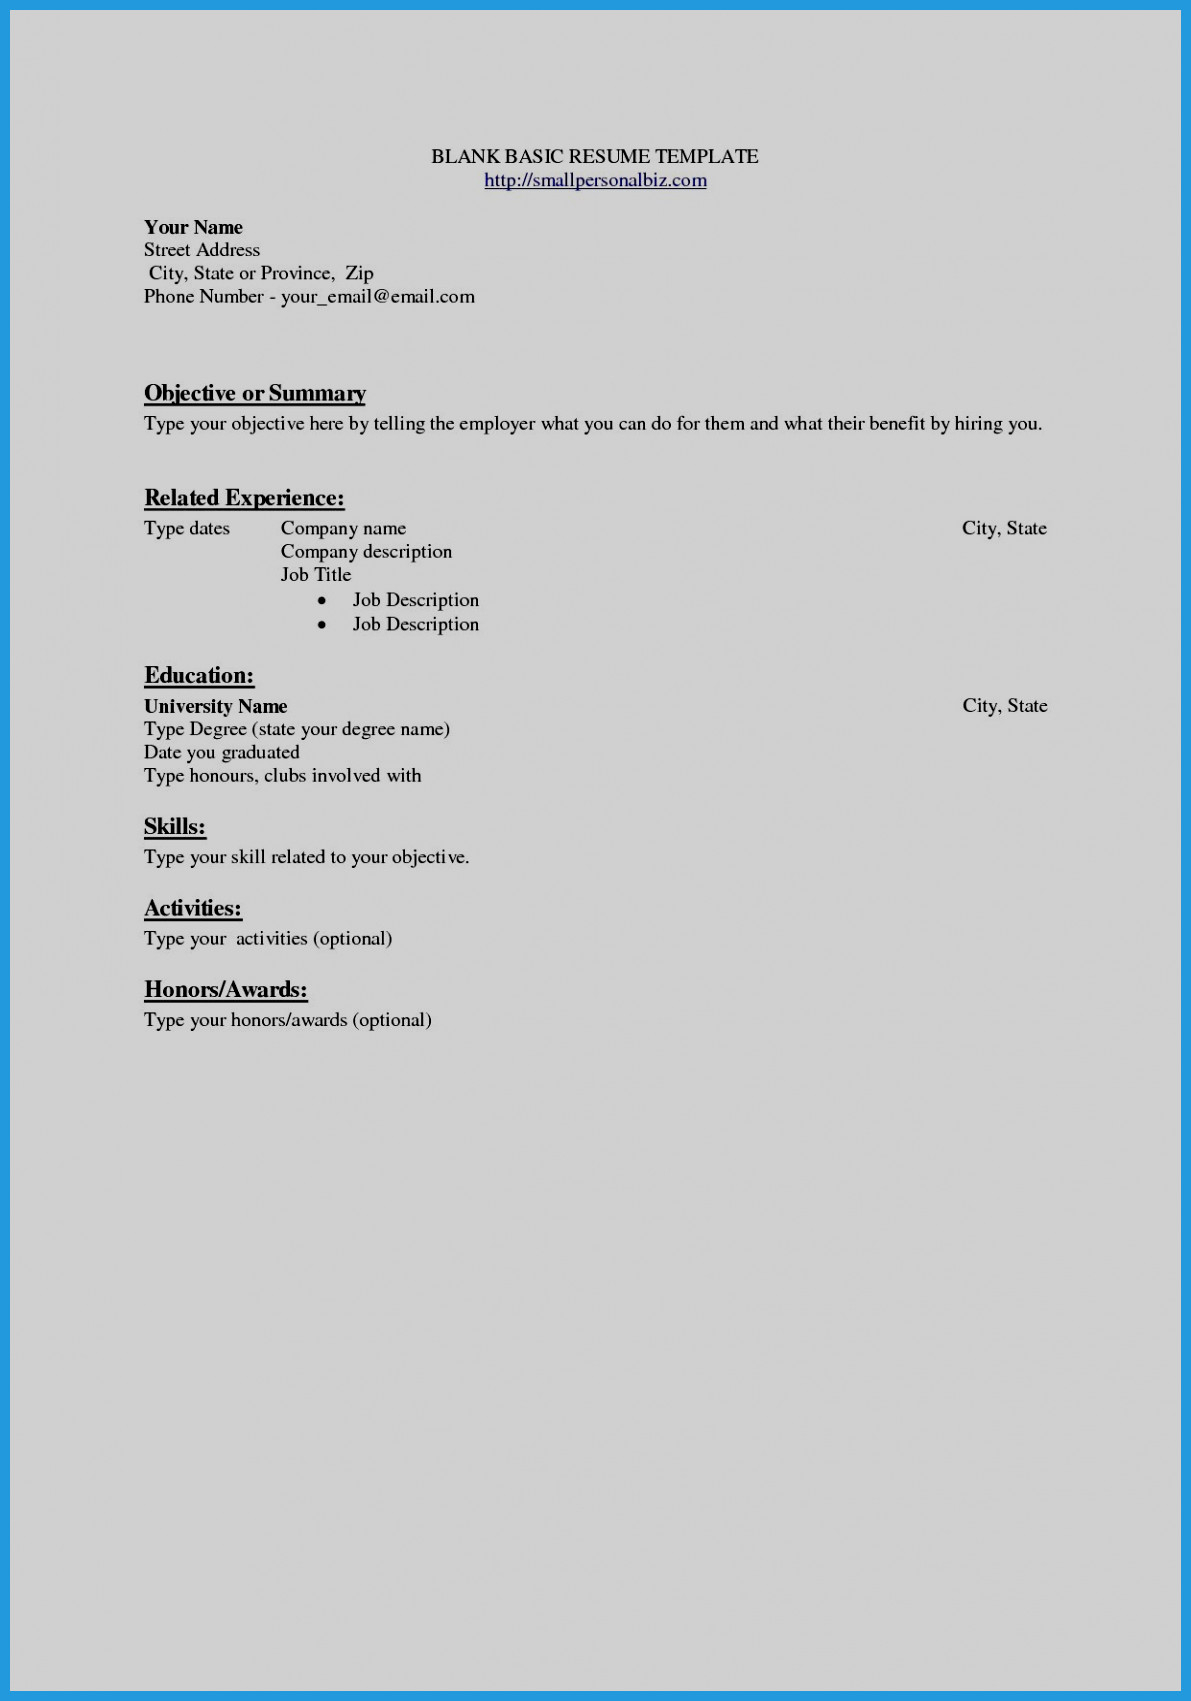 General Contractor Resume Template - Building A Awesome Resume Examples Objective Doc